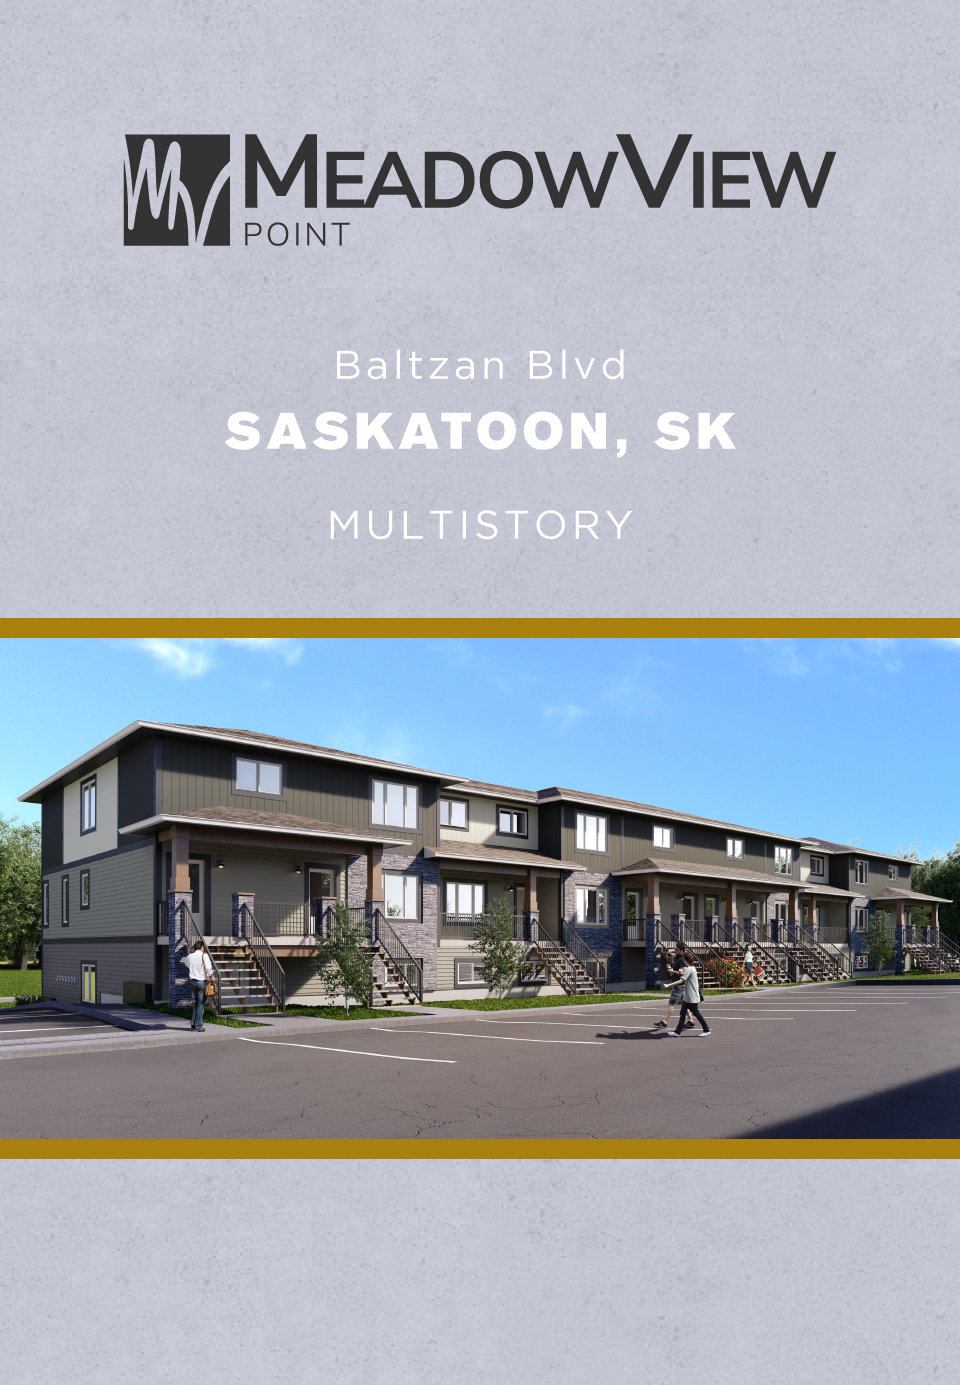 MeadowView Point Multistory